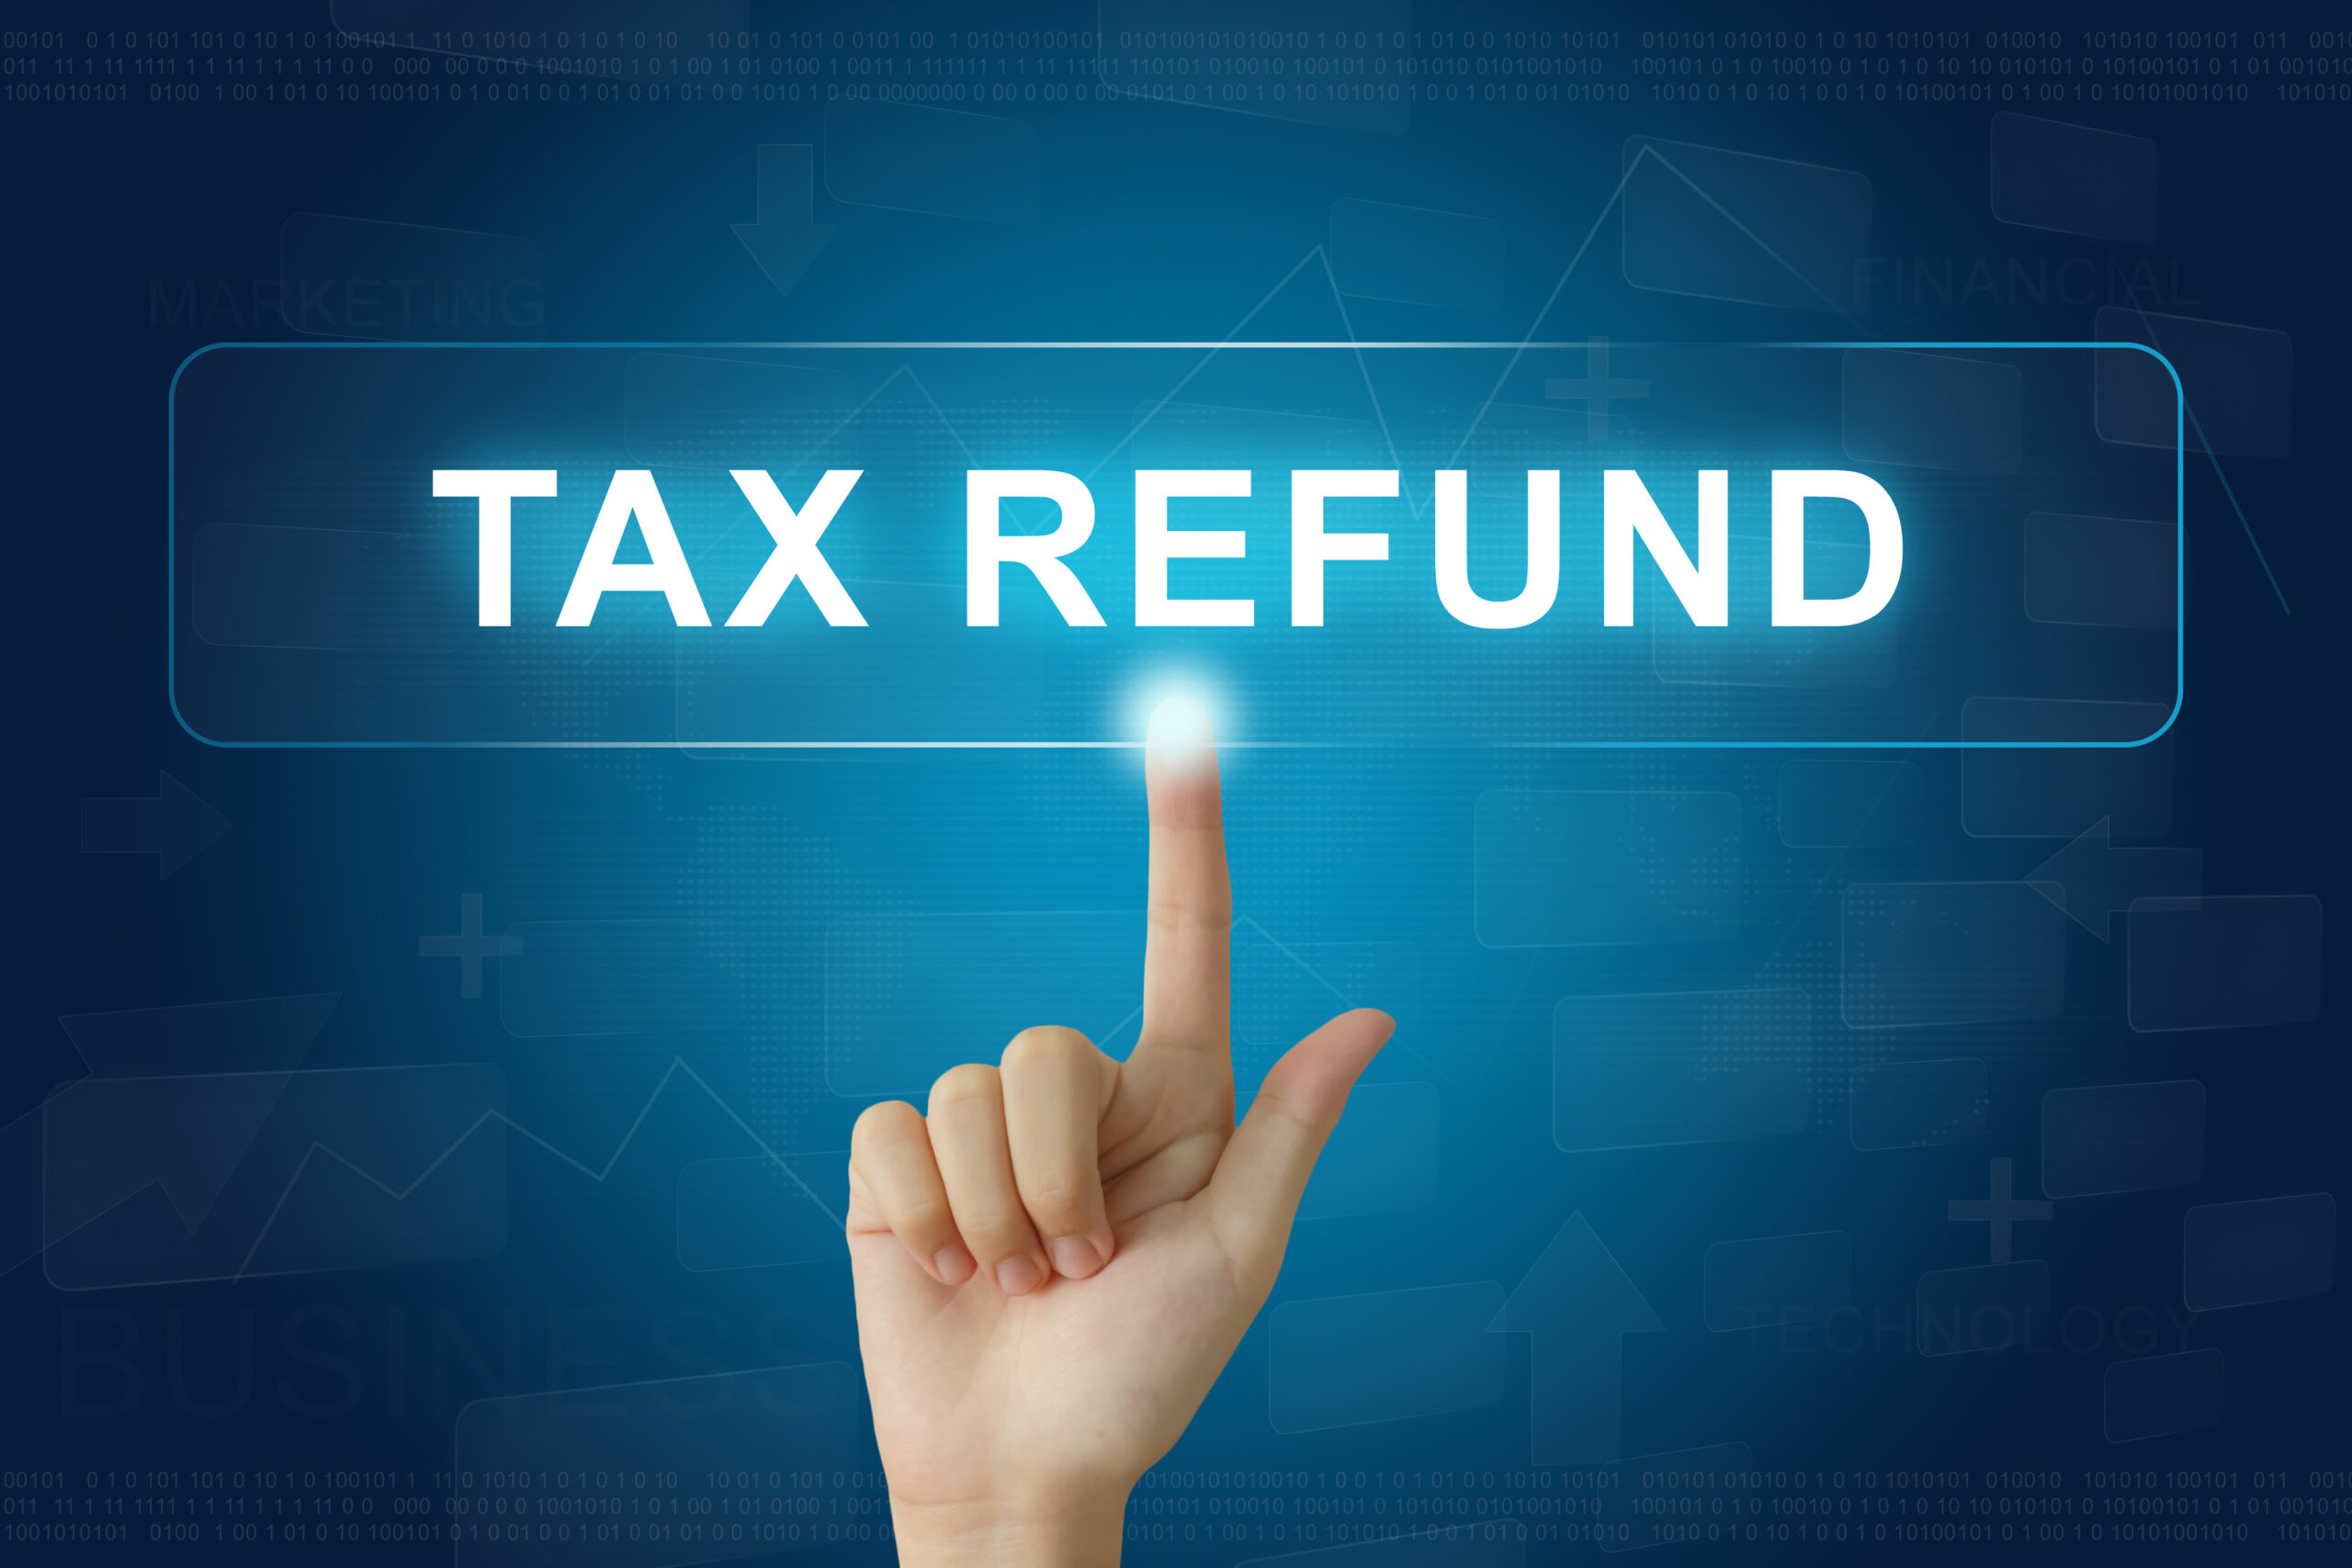 IRS Refund Not Received Yet?